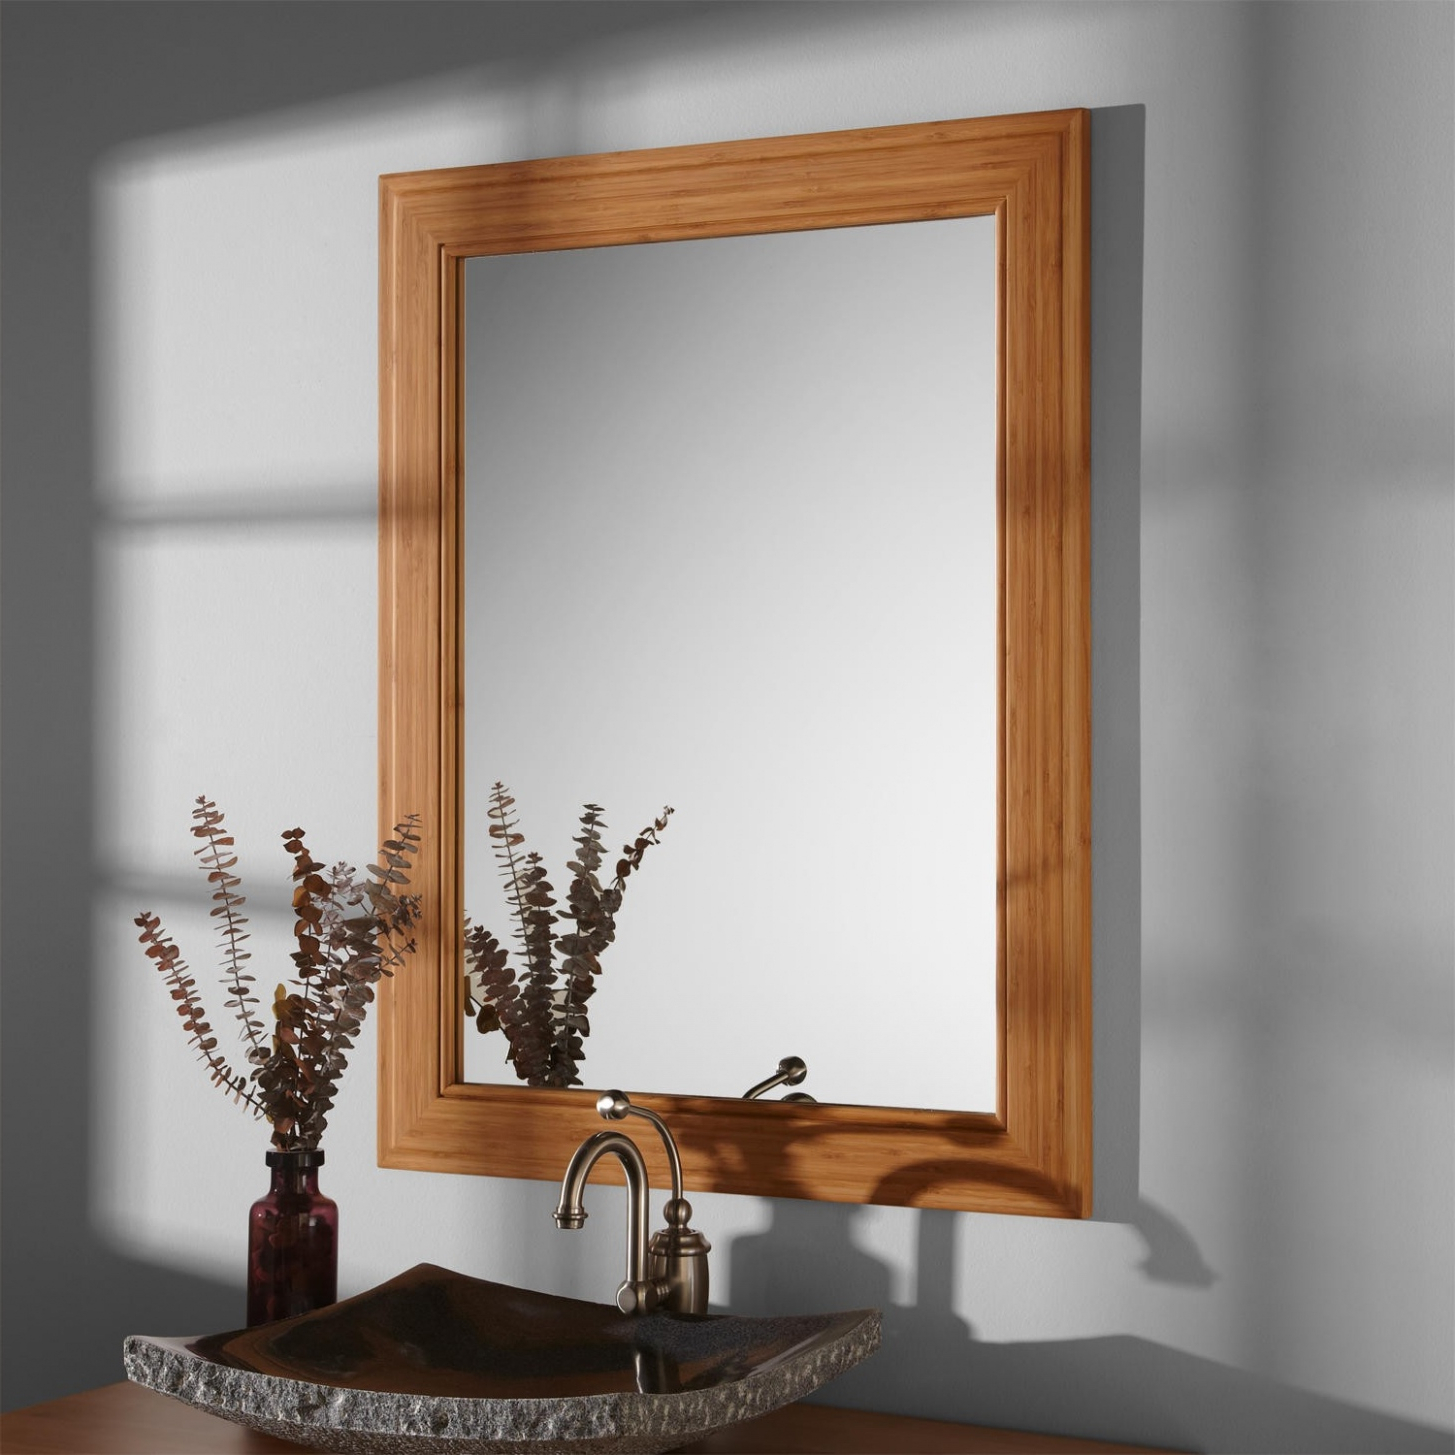 Famous Bamboo Framed Mirror — Rabbssteak House In Bamboo Framed Wall Mirrors (View 7 of 20)